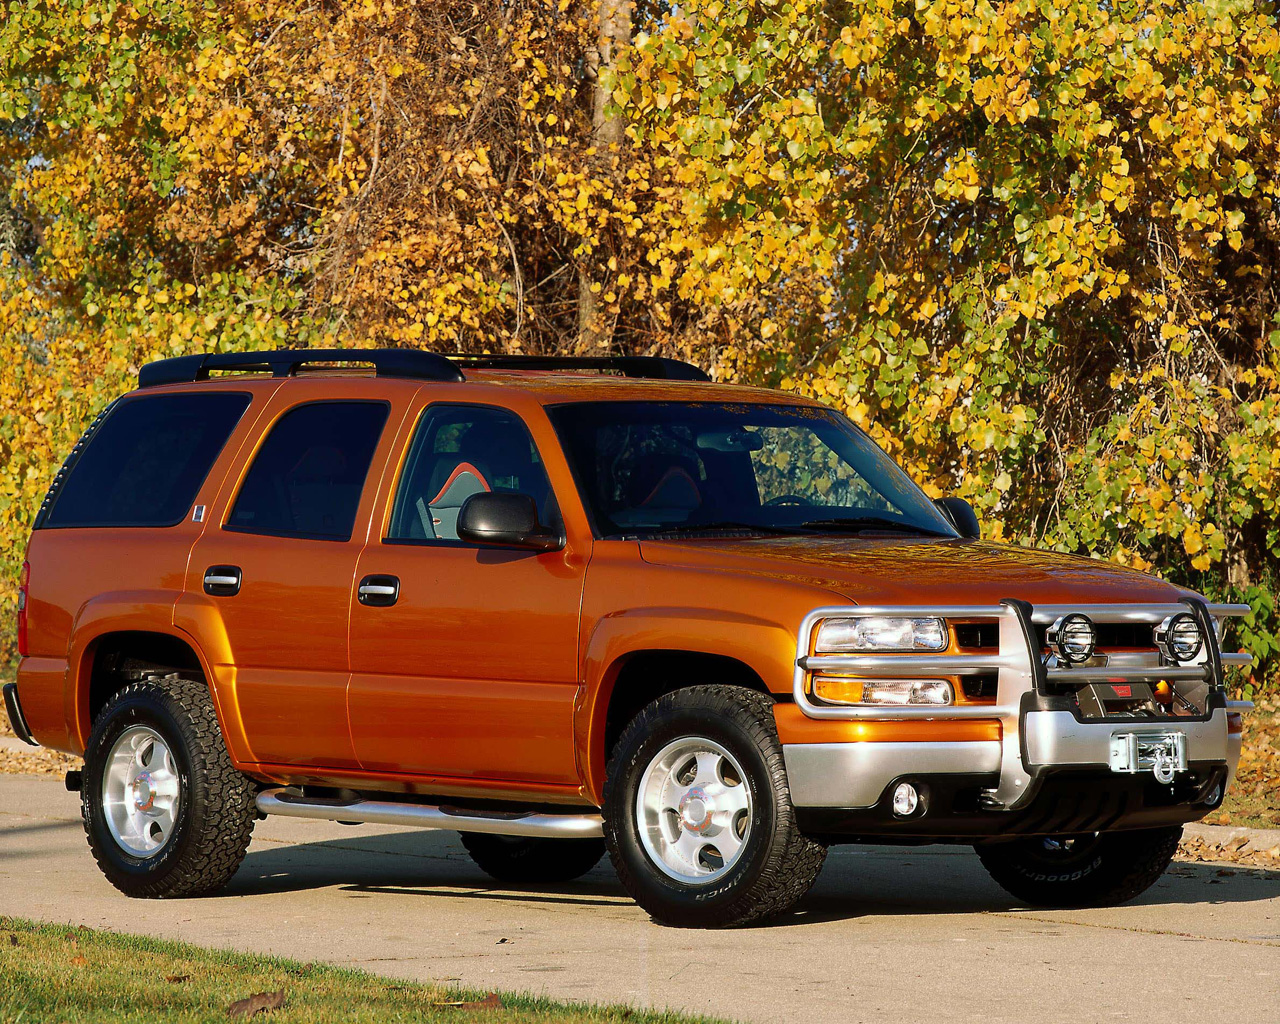 chevrolet tahoe (gmt840) 2006 #8